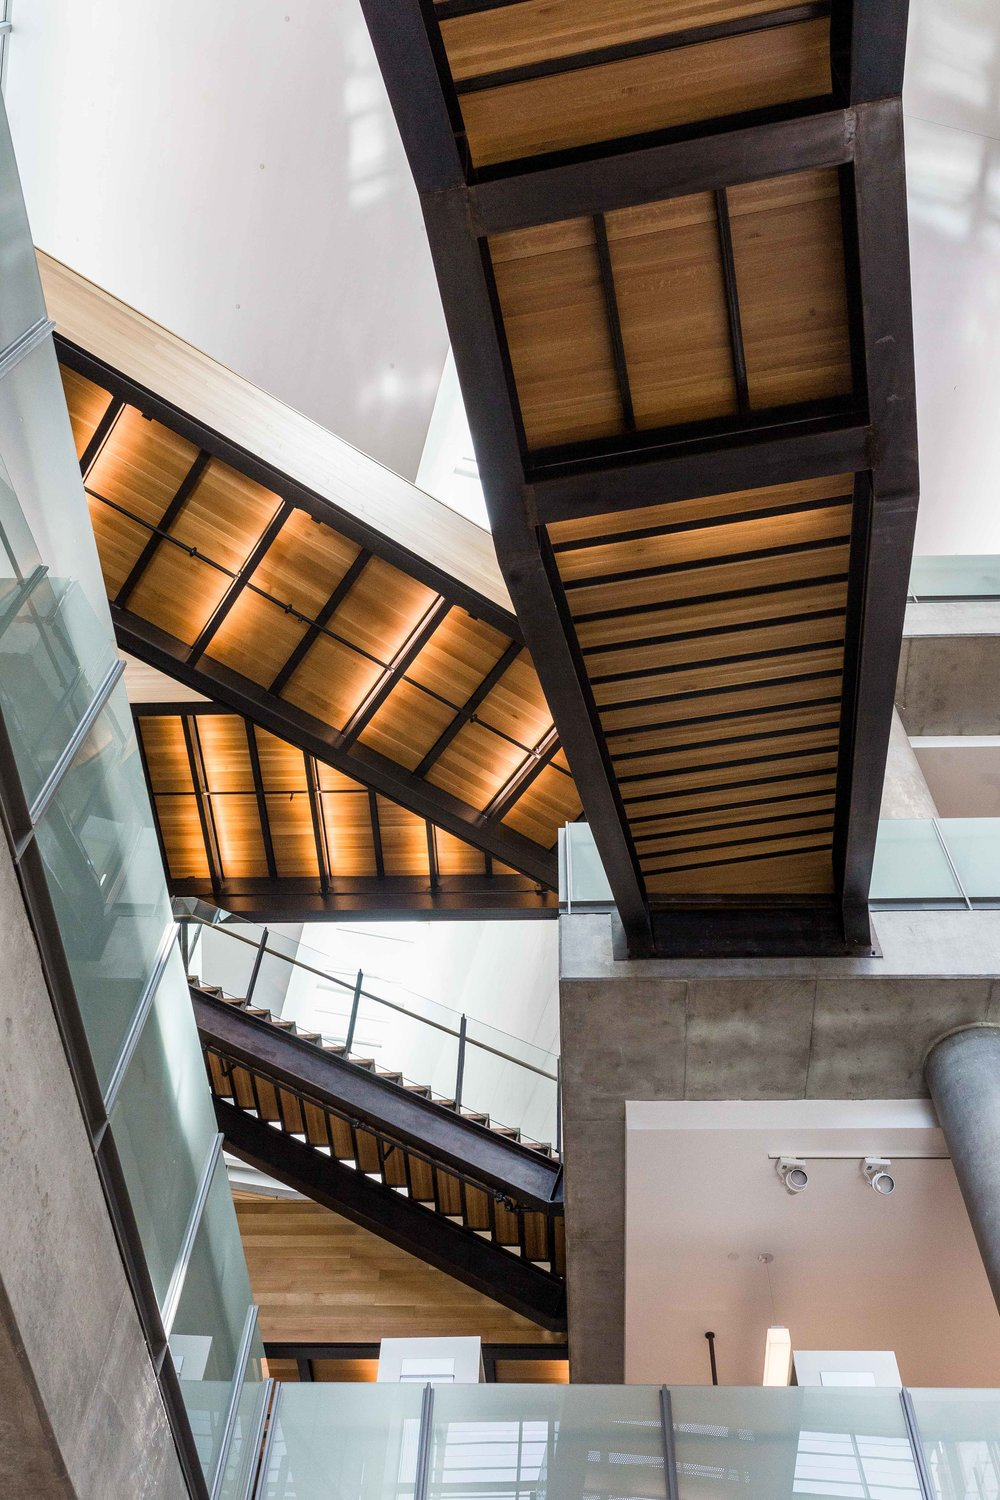 Nothing ordinary going on here: stairwells and run-of-the-mill escalators are a thing of the past.